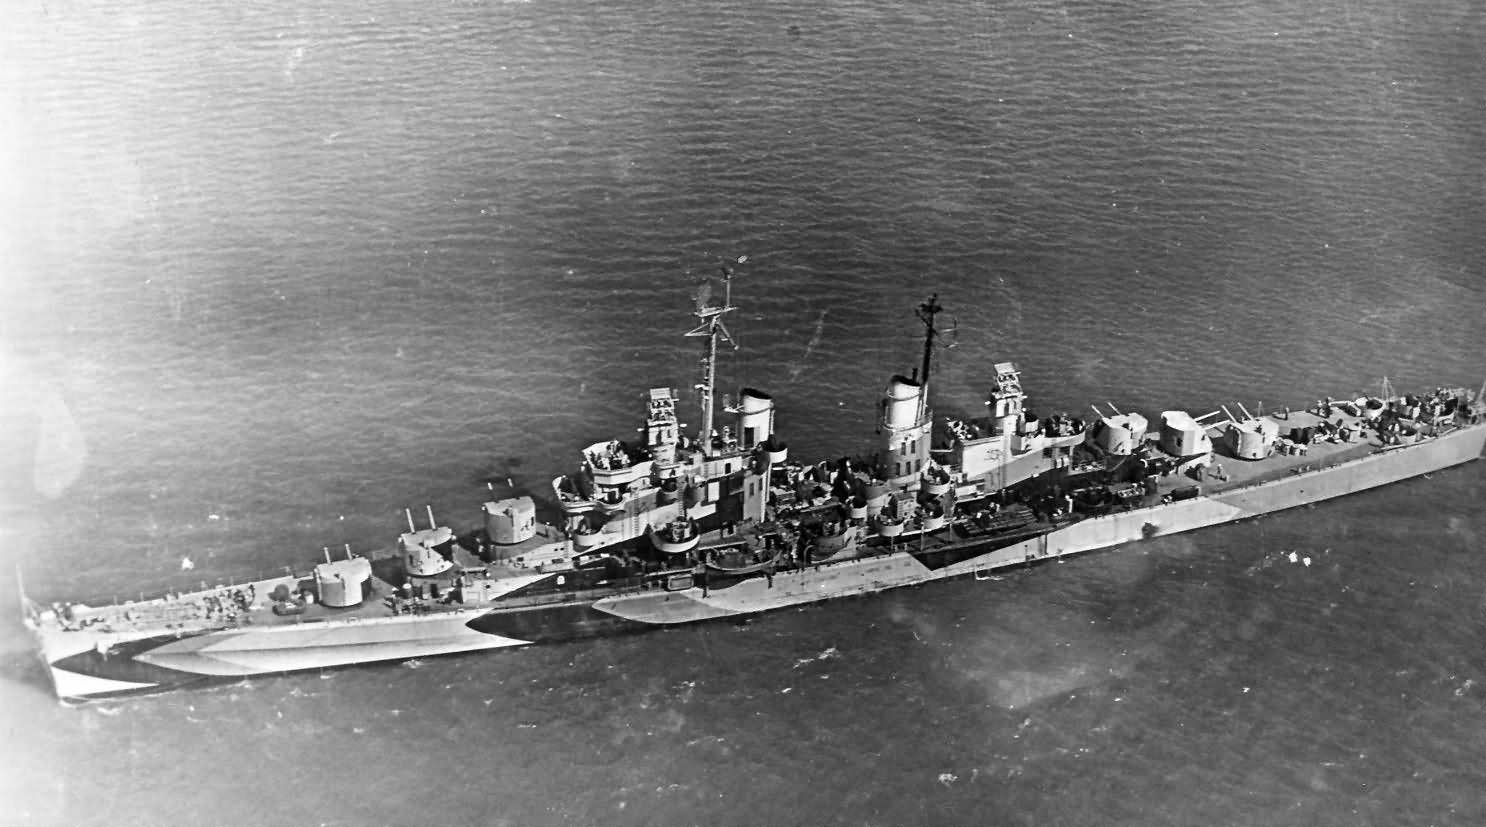 USS Flint (CL-97) US Navy Light Cruiser in camouflage